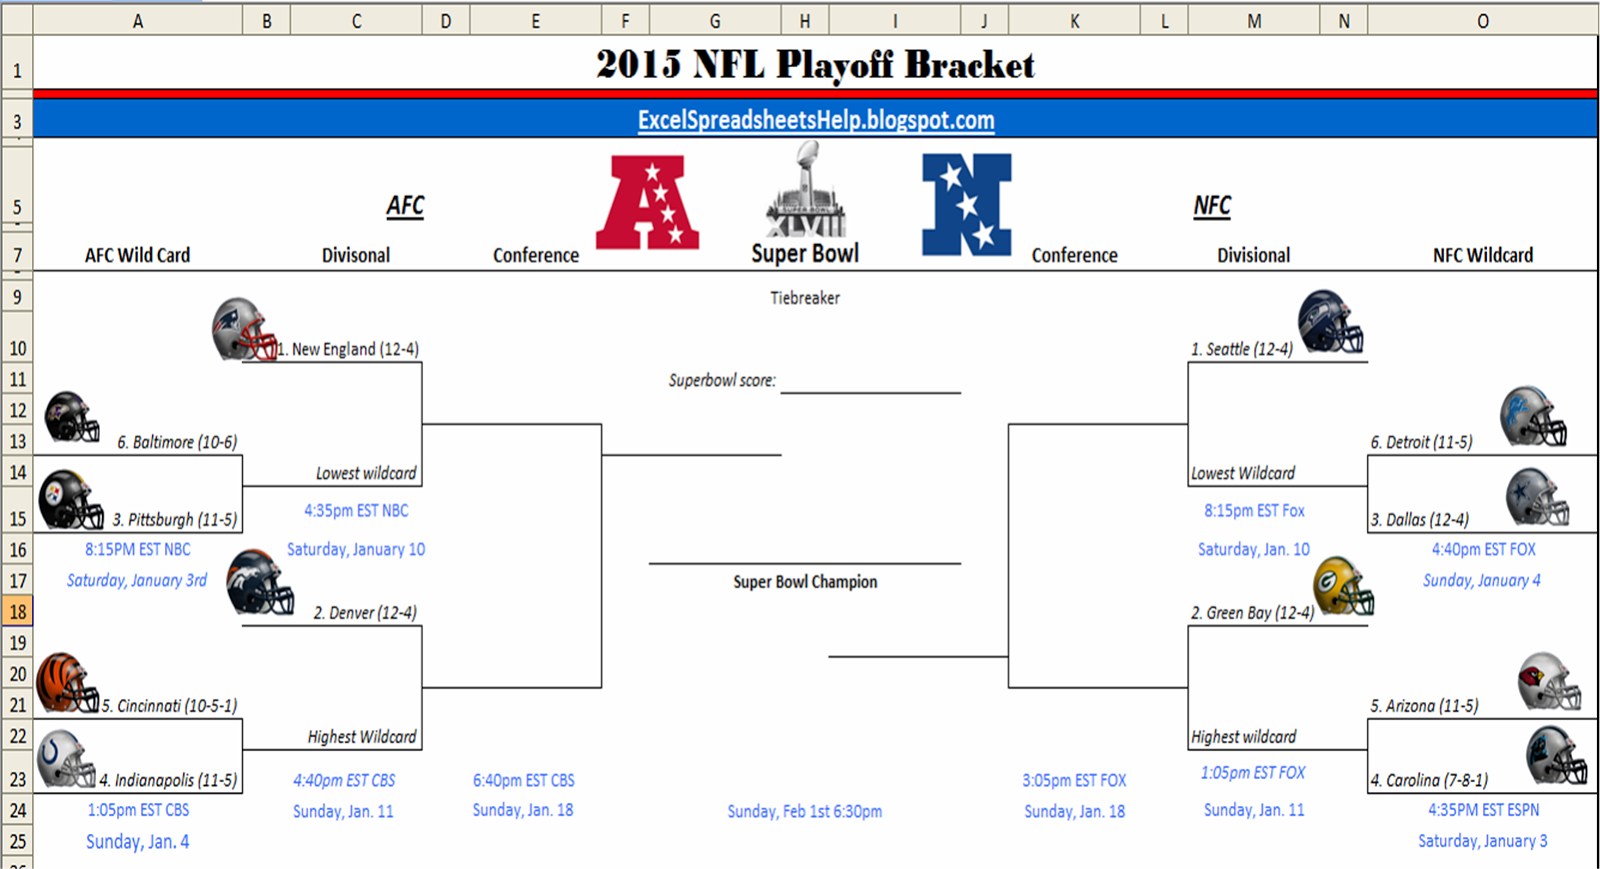 Excel Spreadsheets Help Printable 2015 Nfl Playoff Bracket Nfl Playoff Bracket Nfl Playoffs Nfl